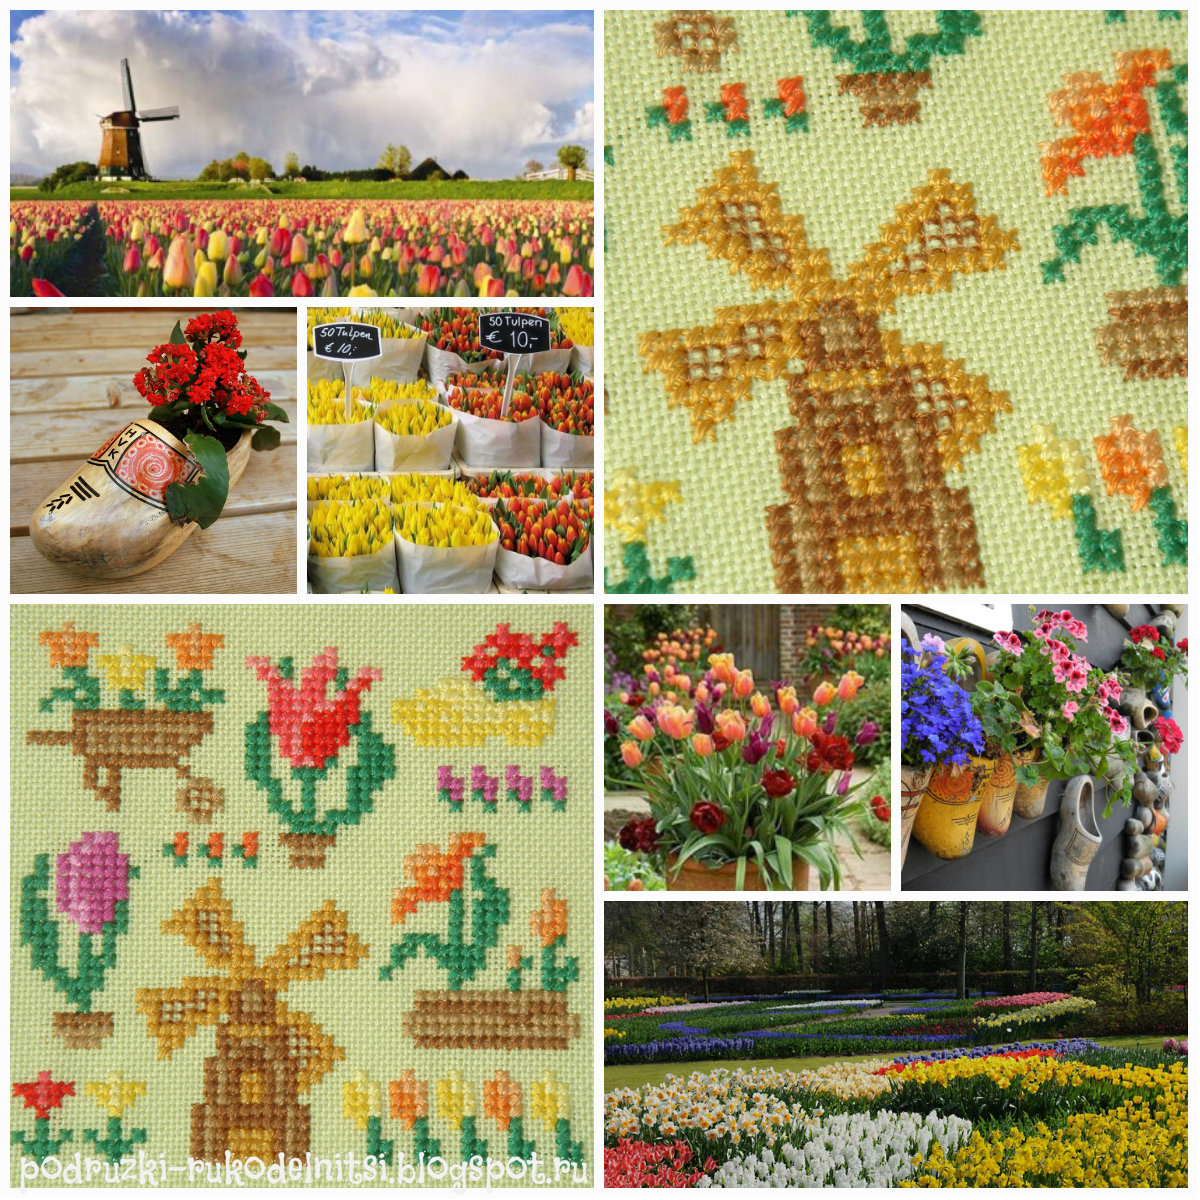 collage holland2.jpg